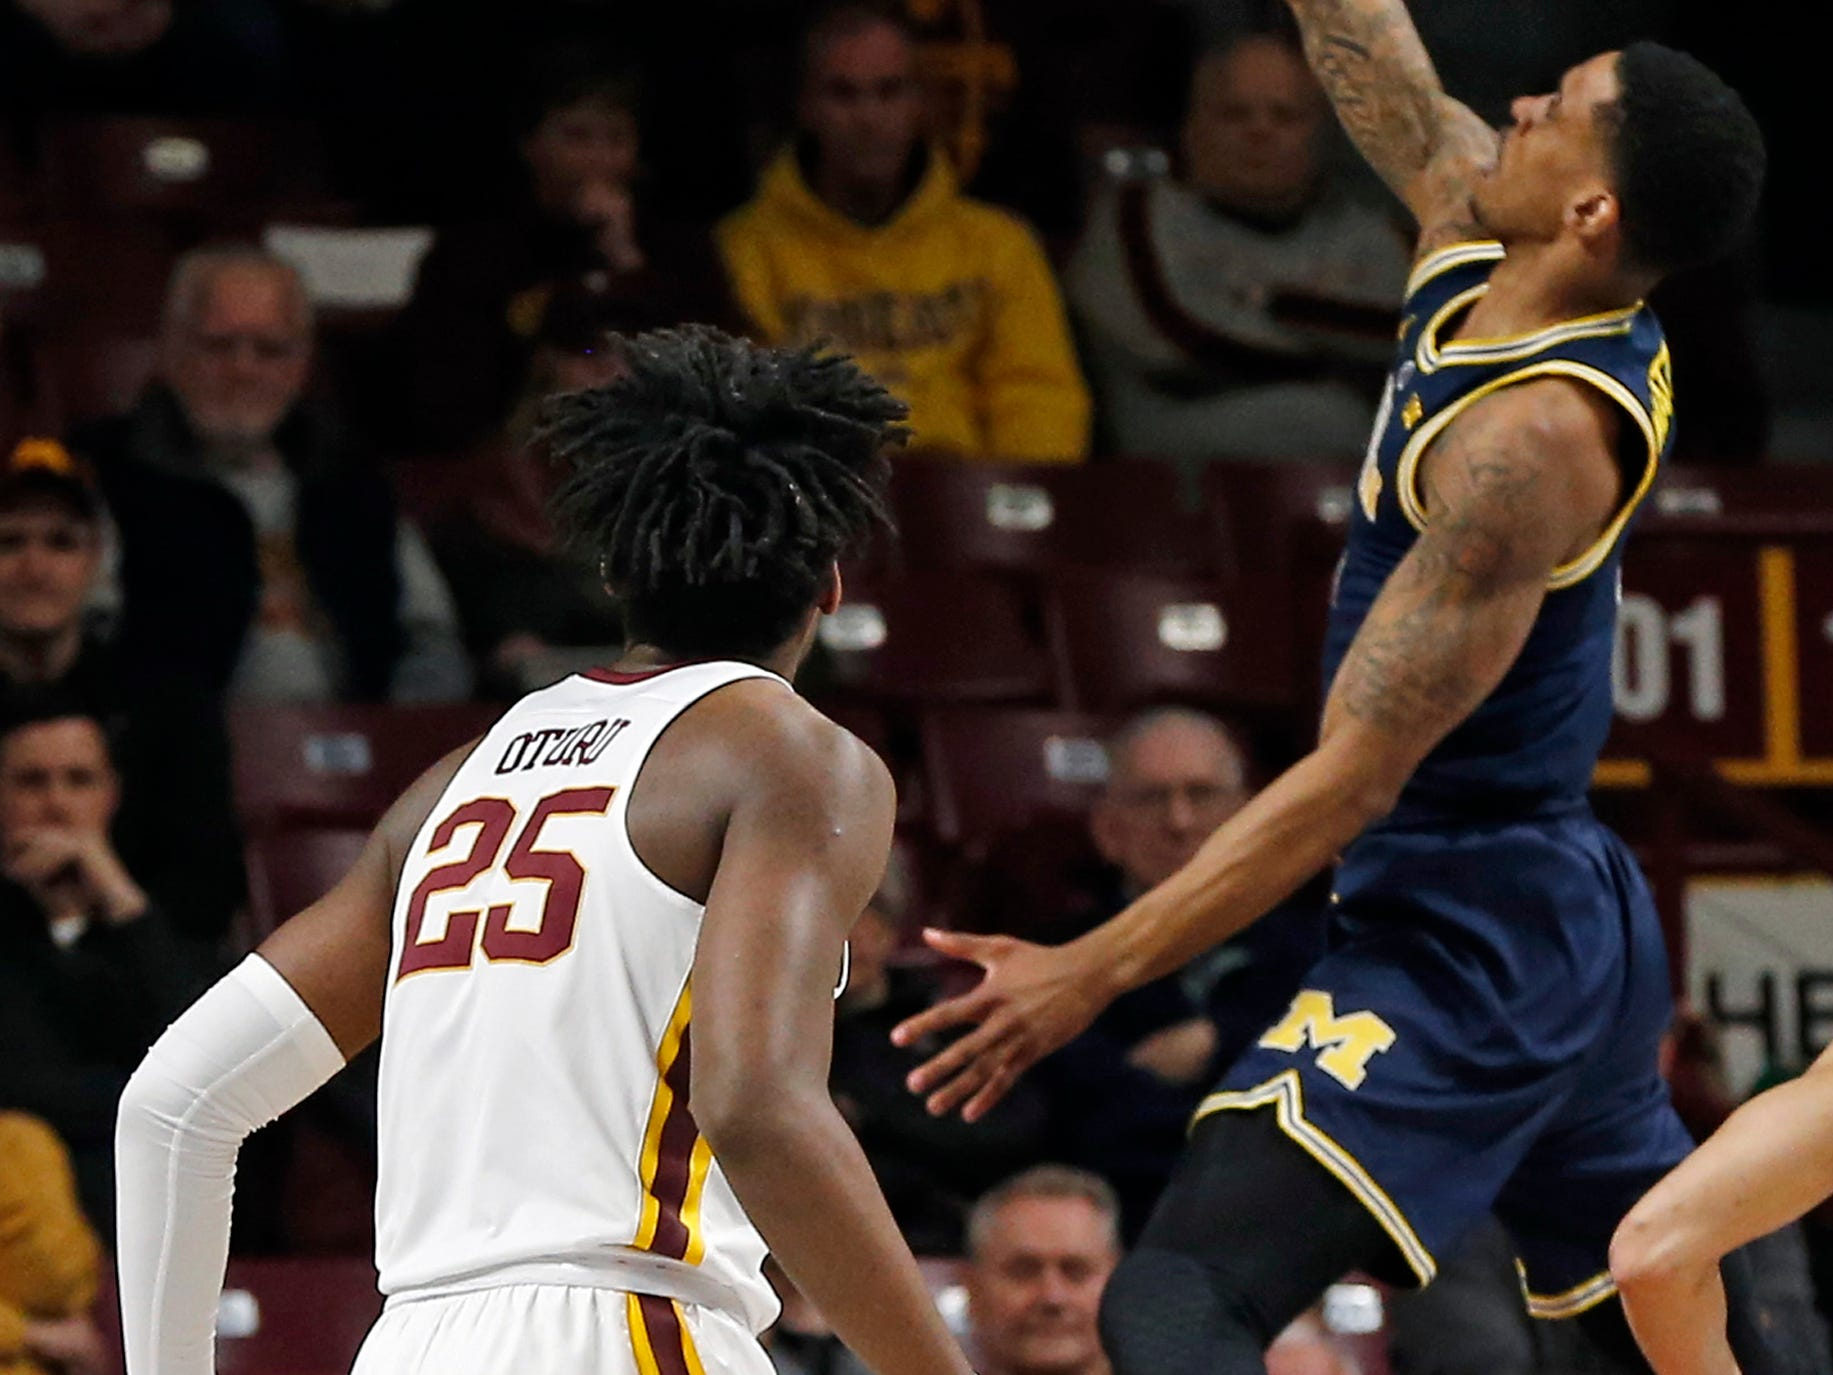 Michigan's Charles Matthews, right, lays up a shot as Minnesota's Daniel Oturu watches in the first half of an NCAA college basketball game Thursday, Feb. 21, 2019, in Minneapolis.